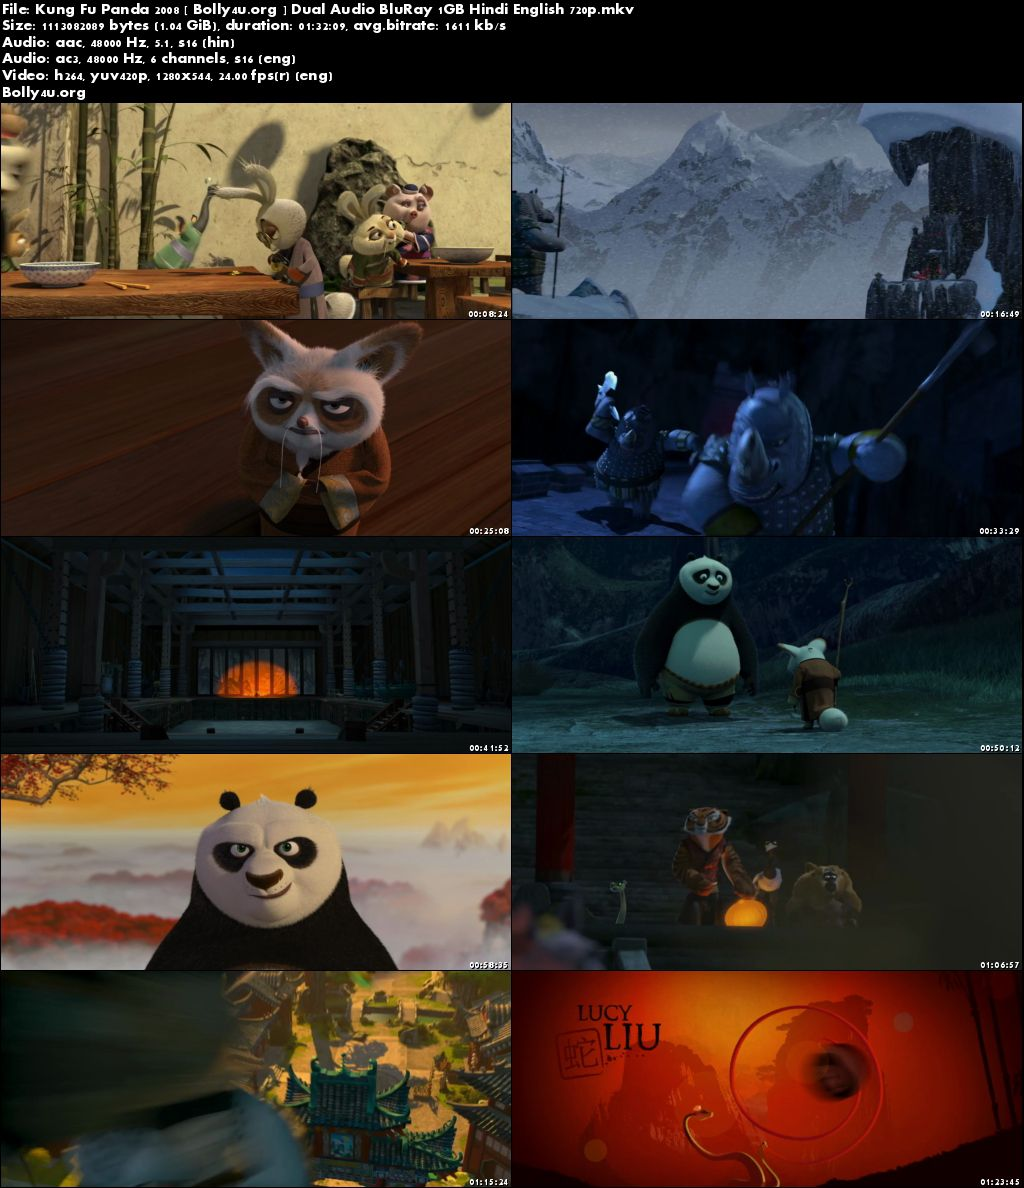 Kung fu panda 2 full movie in hindi download 300mb